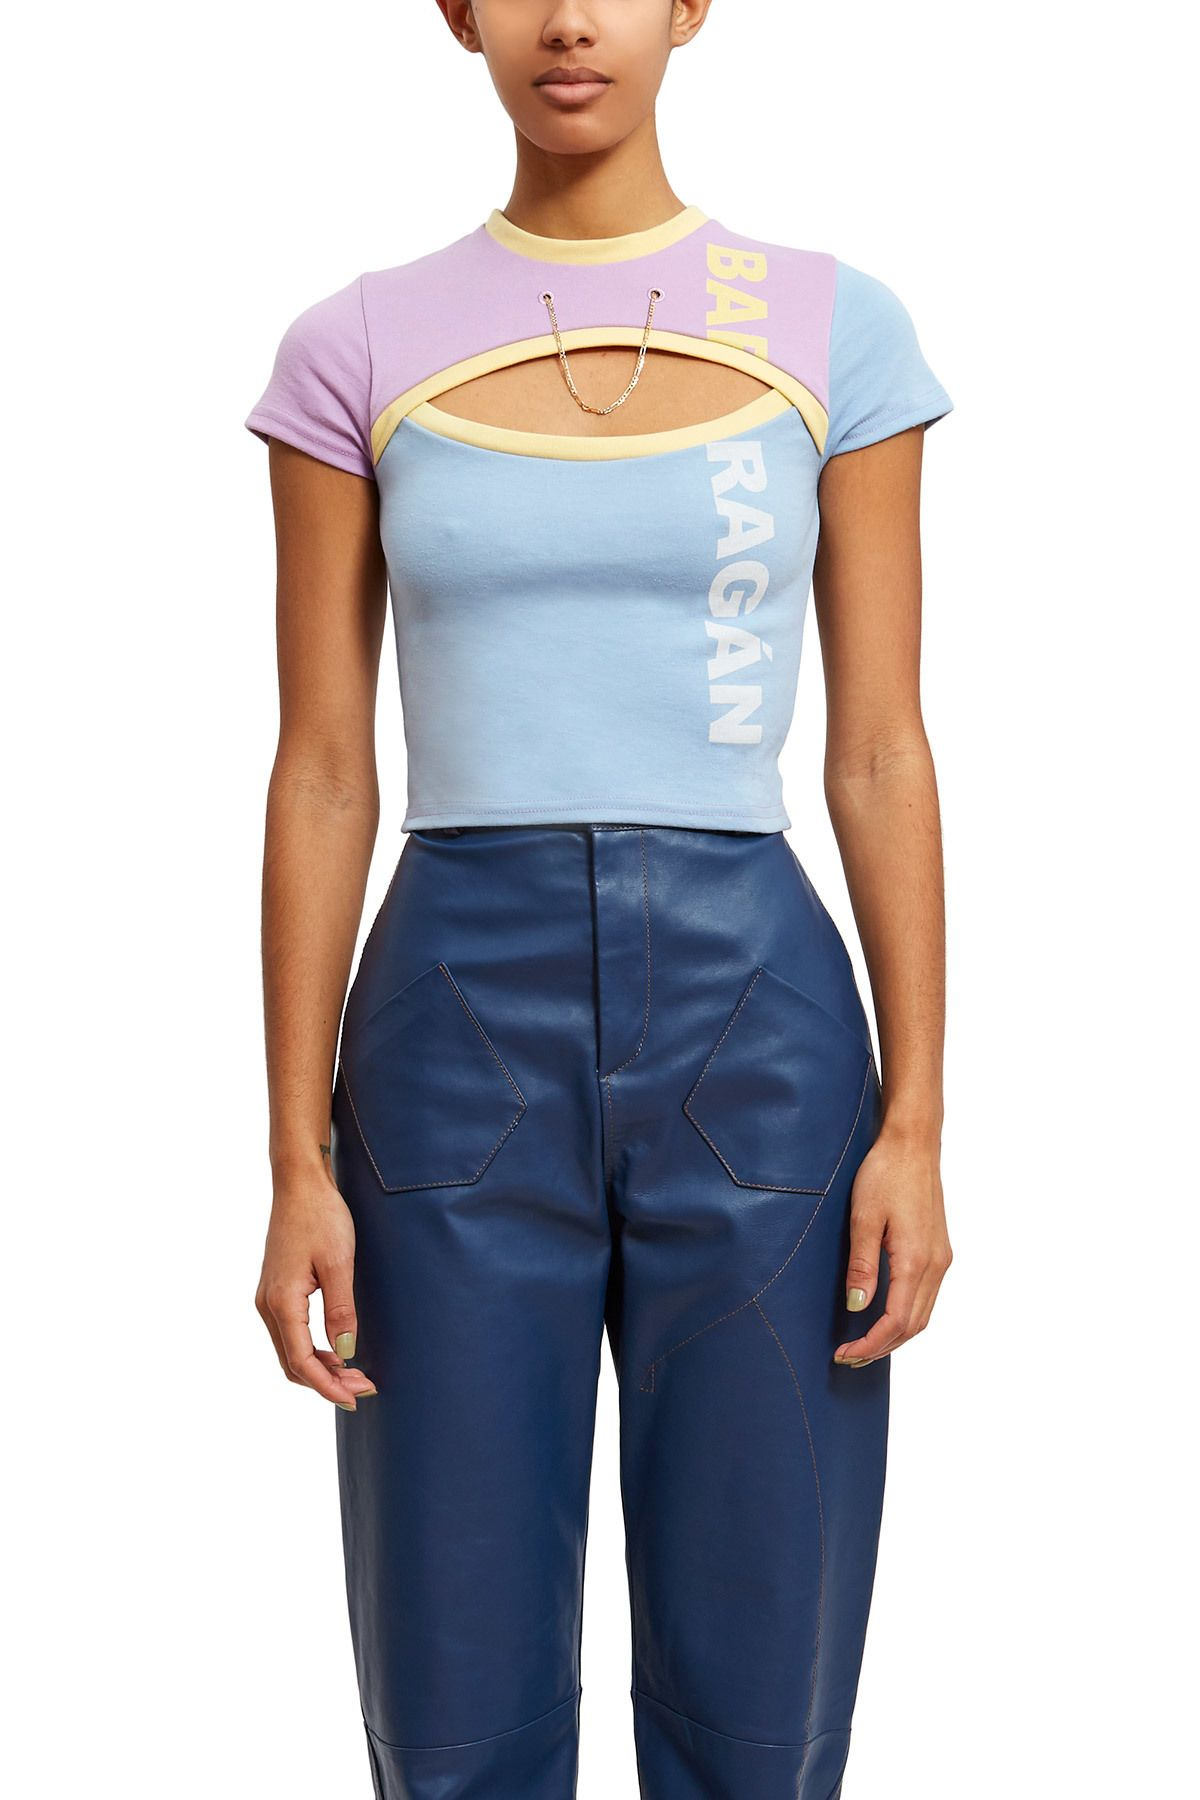 fd5e40433d3 Barragán, Baby Tee This purple and blue Barragán tee has an opening on the  front